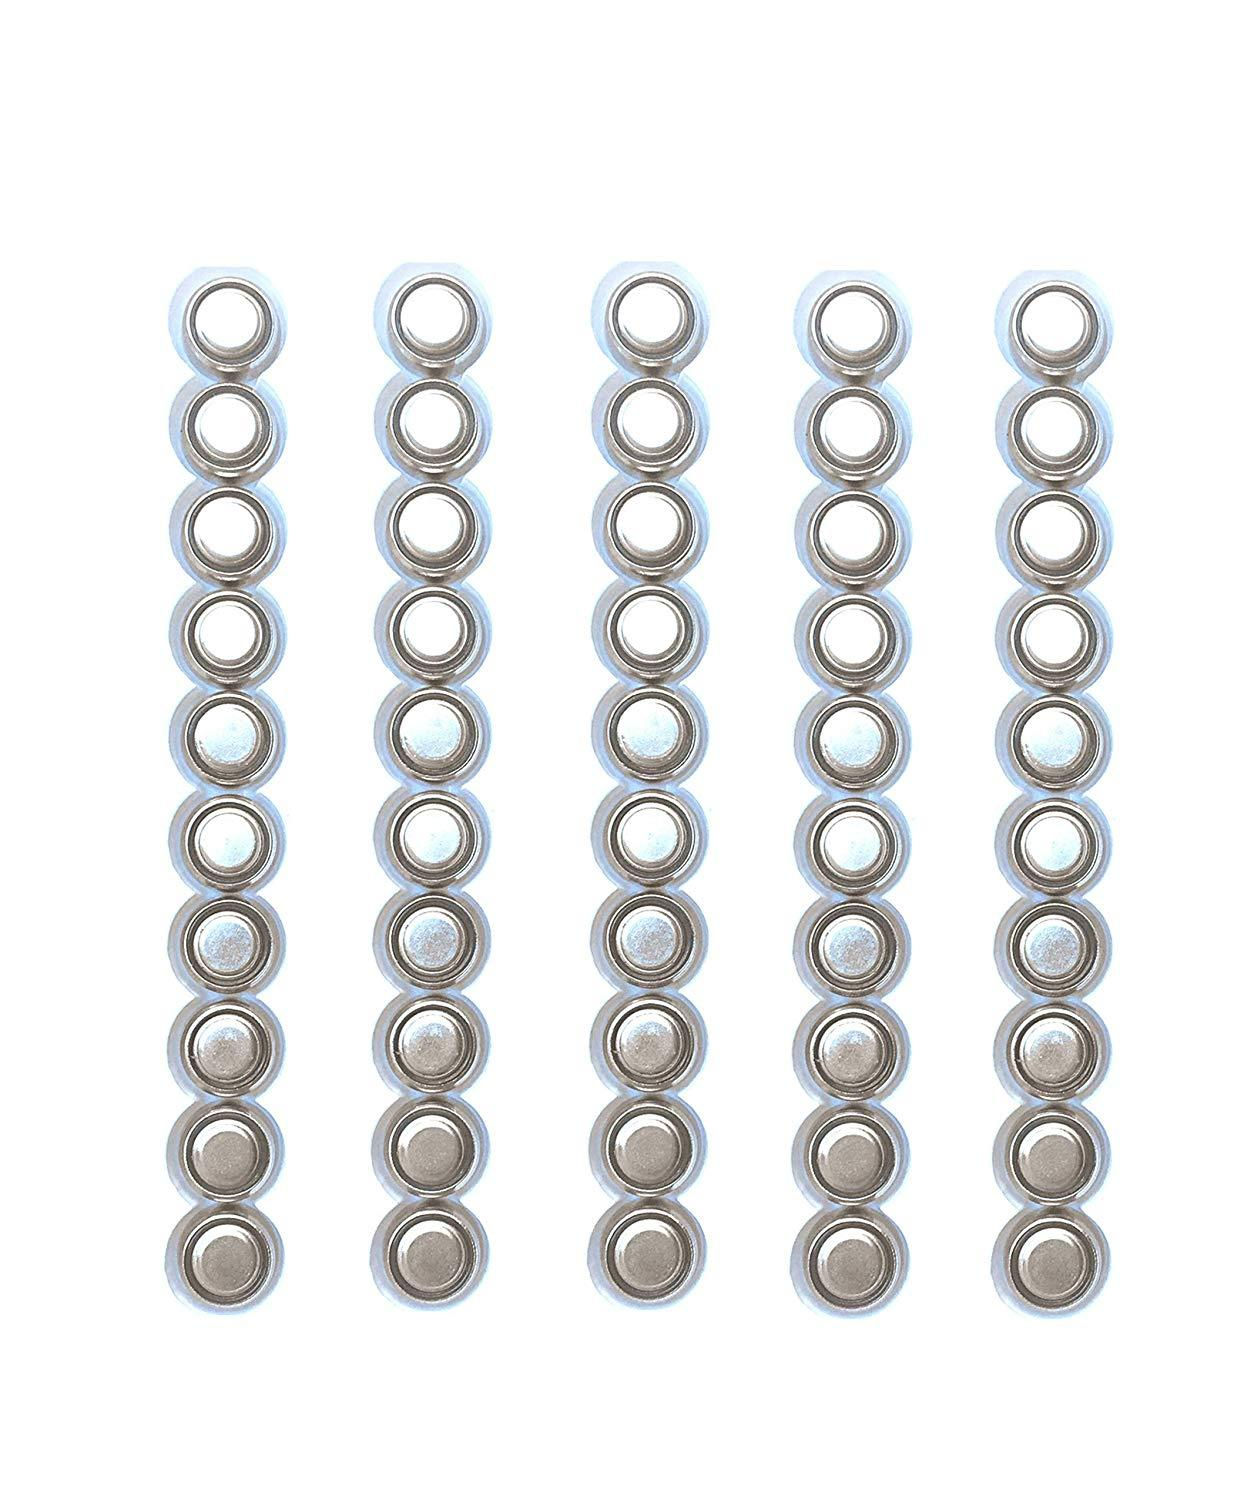 9pcs /lot LR44 Batteries For Wine Bottle LED String Light